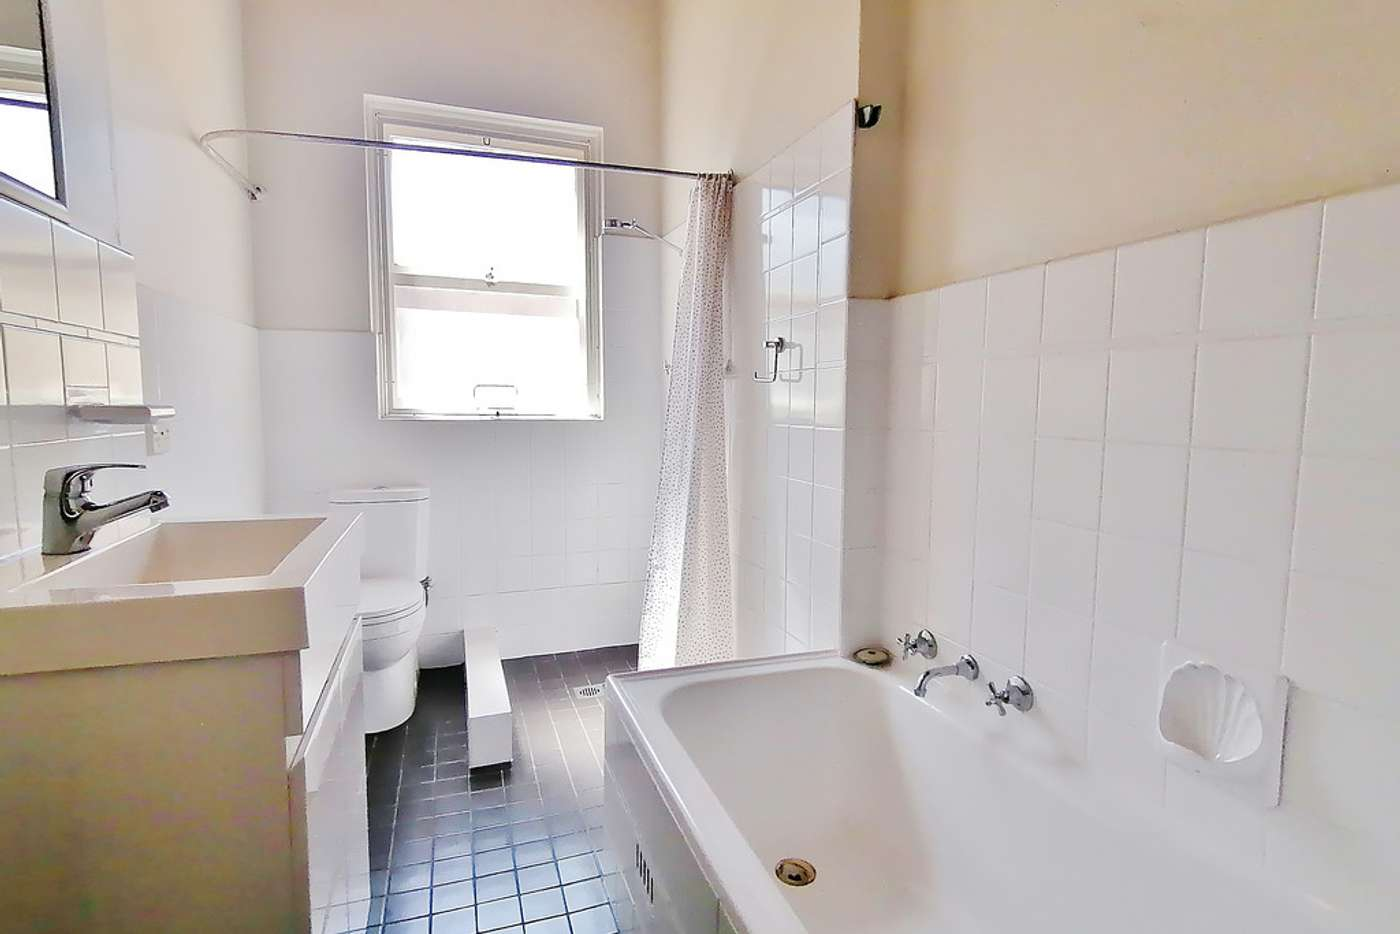 Sixth view of Homely apartment listing, Suite 1, 220A Norton Street, Leichhardt NSW 2040